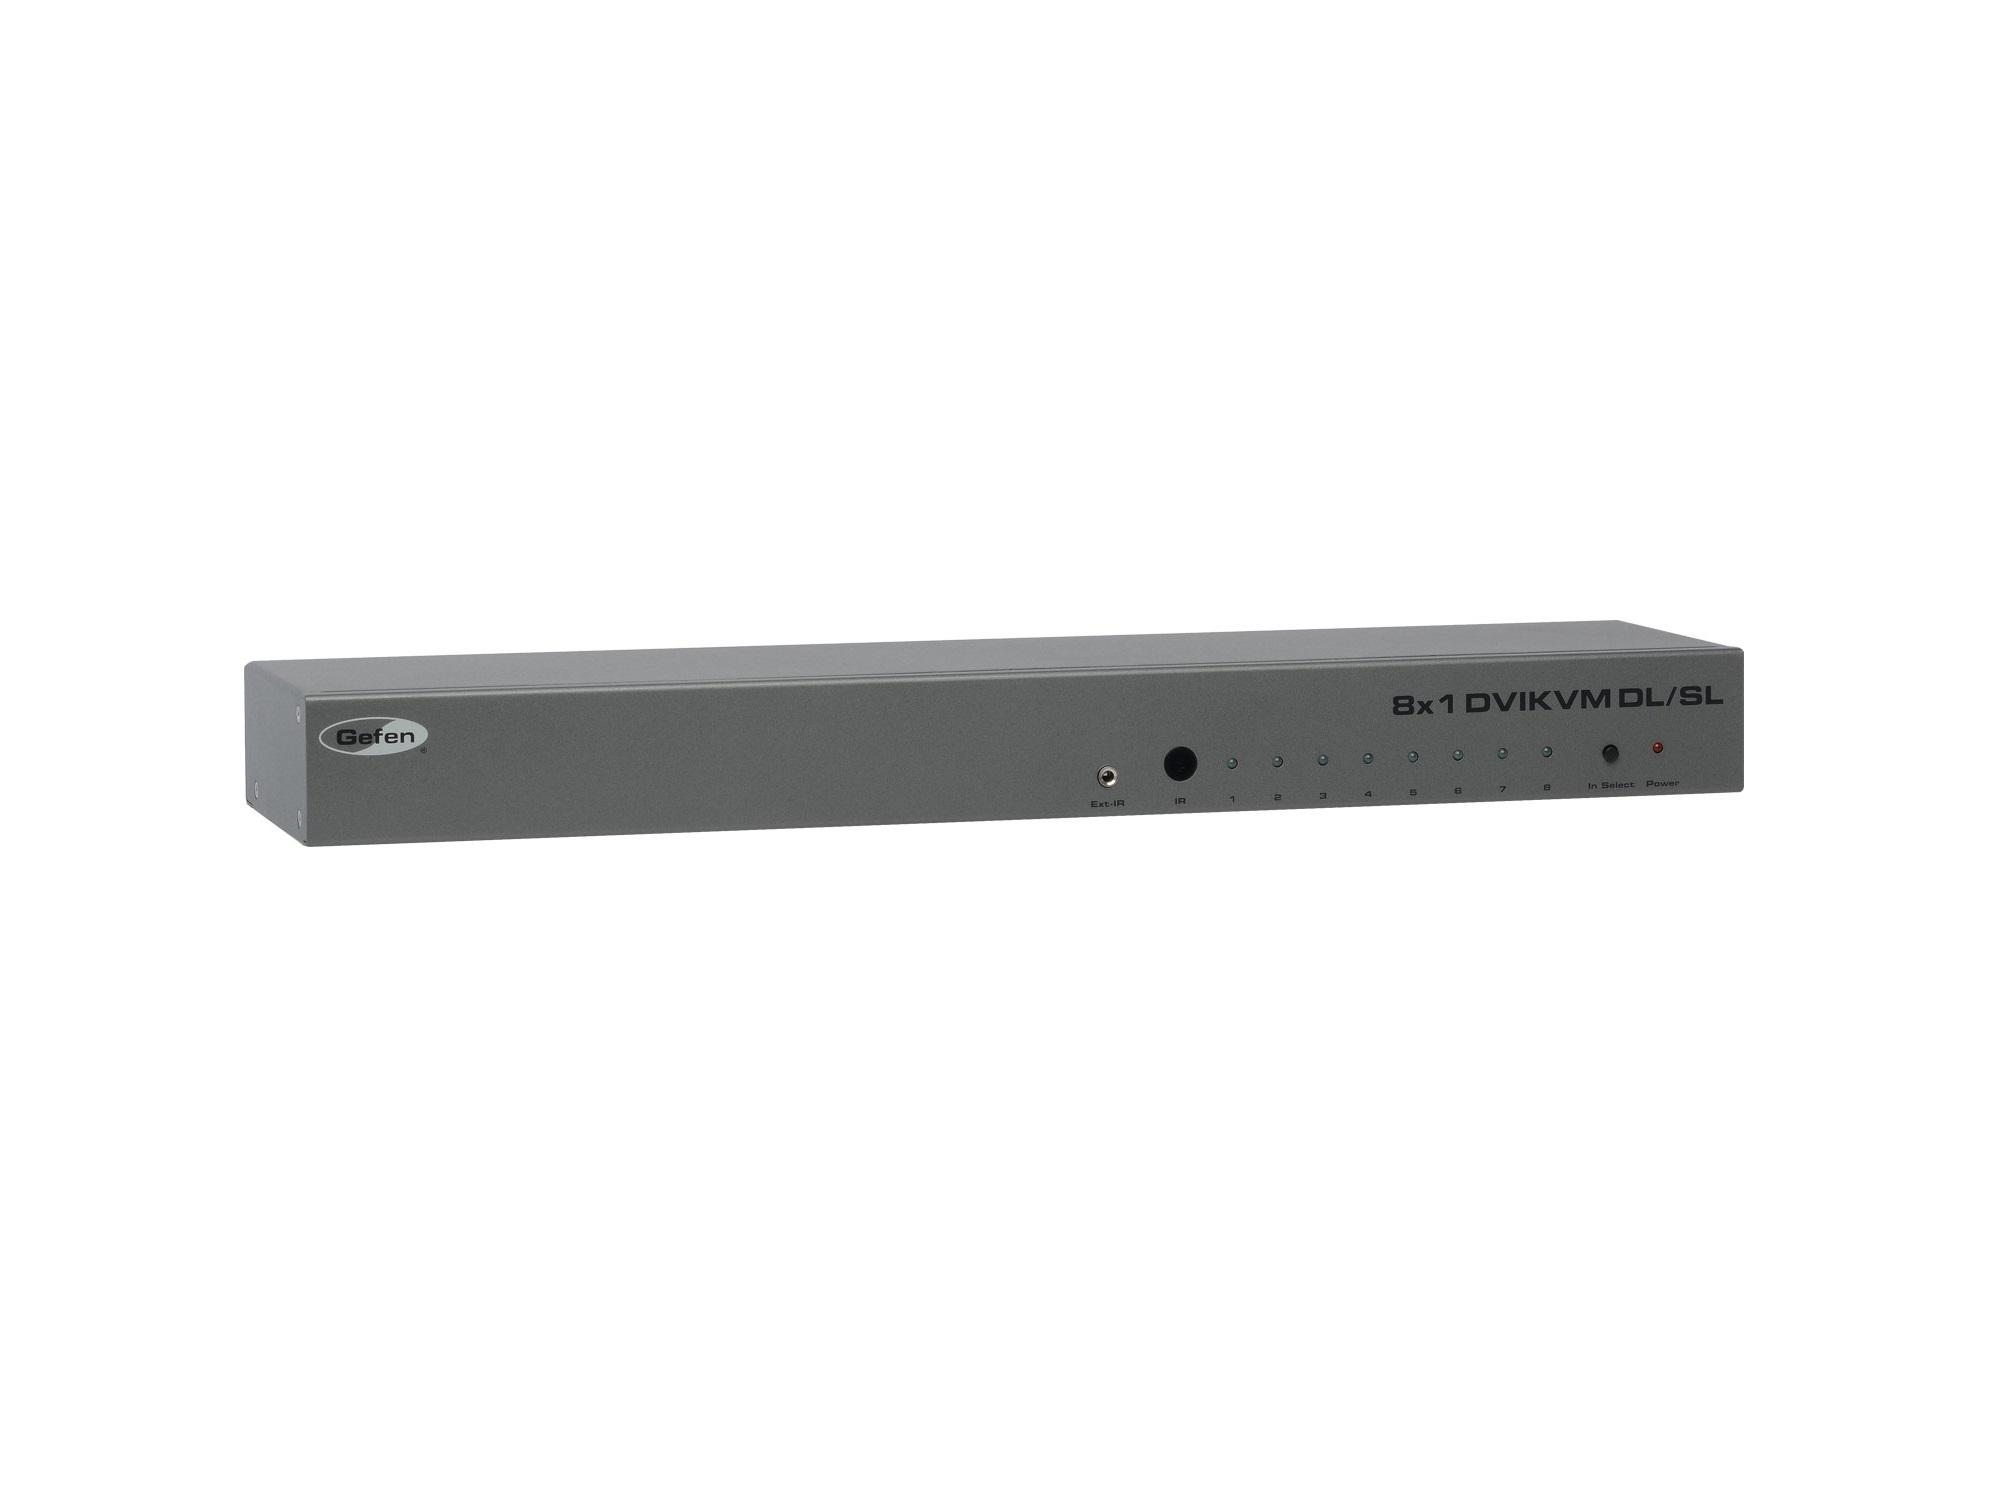 EXT-DVIKVM-841DL 8x1 DVI KVM DL Switcher (Pre-Order) by Gefen